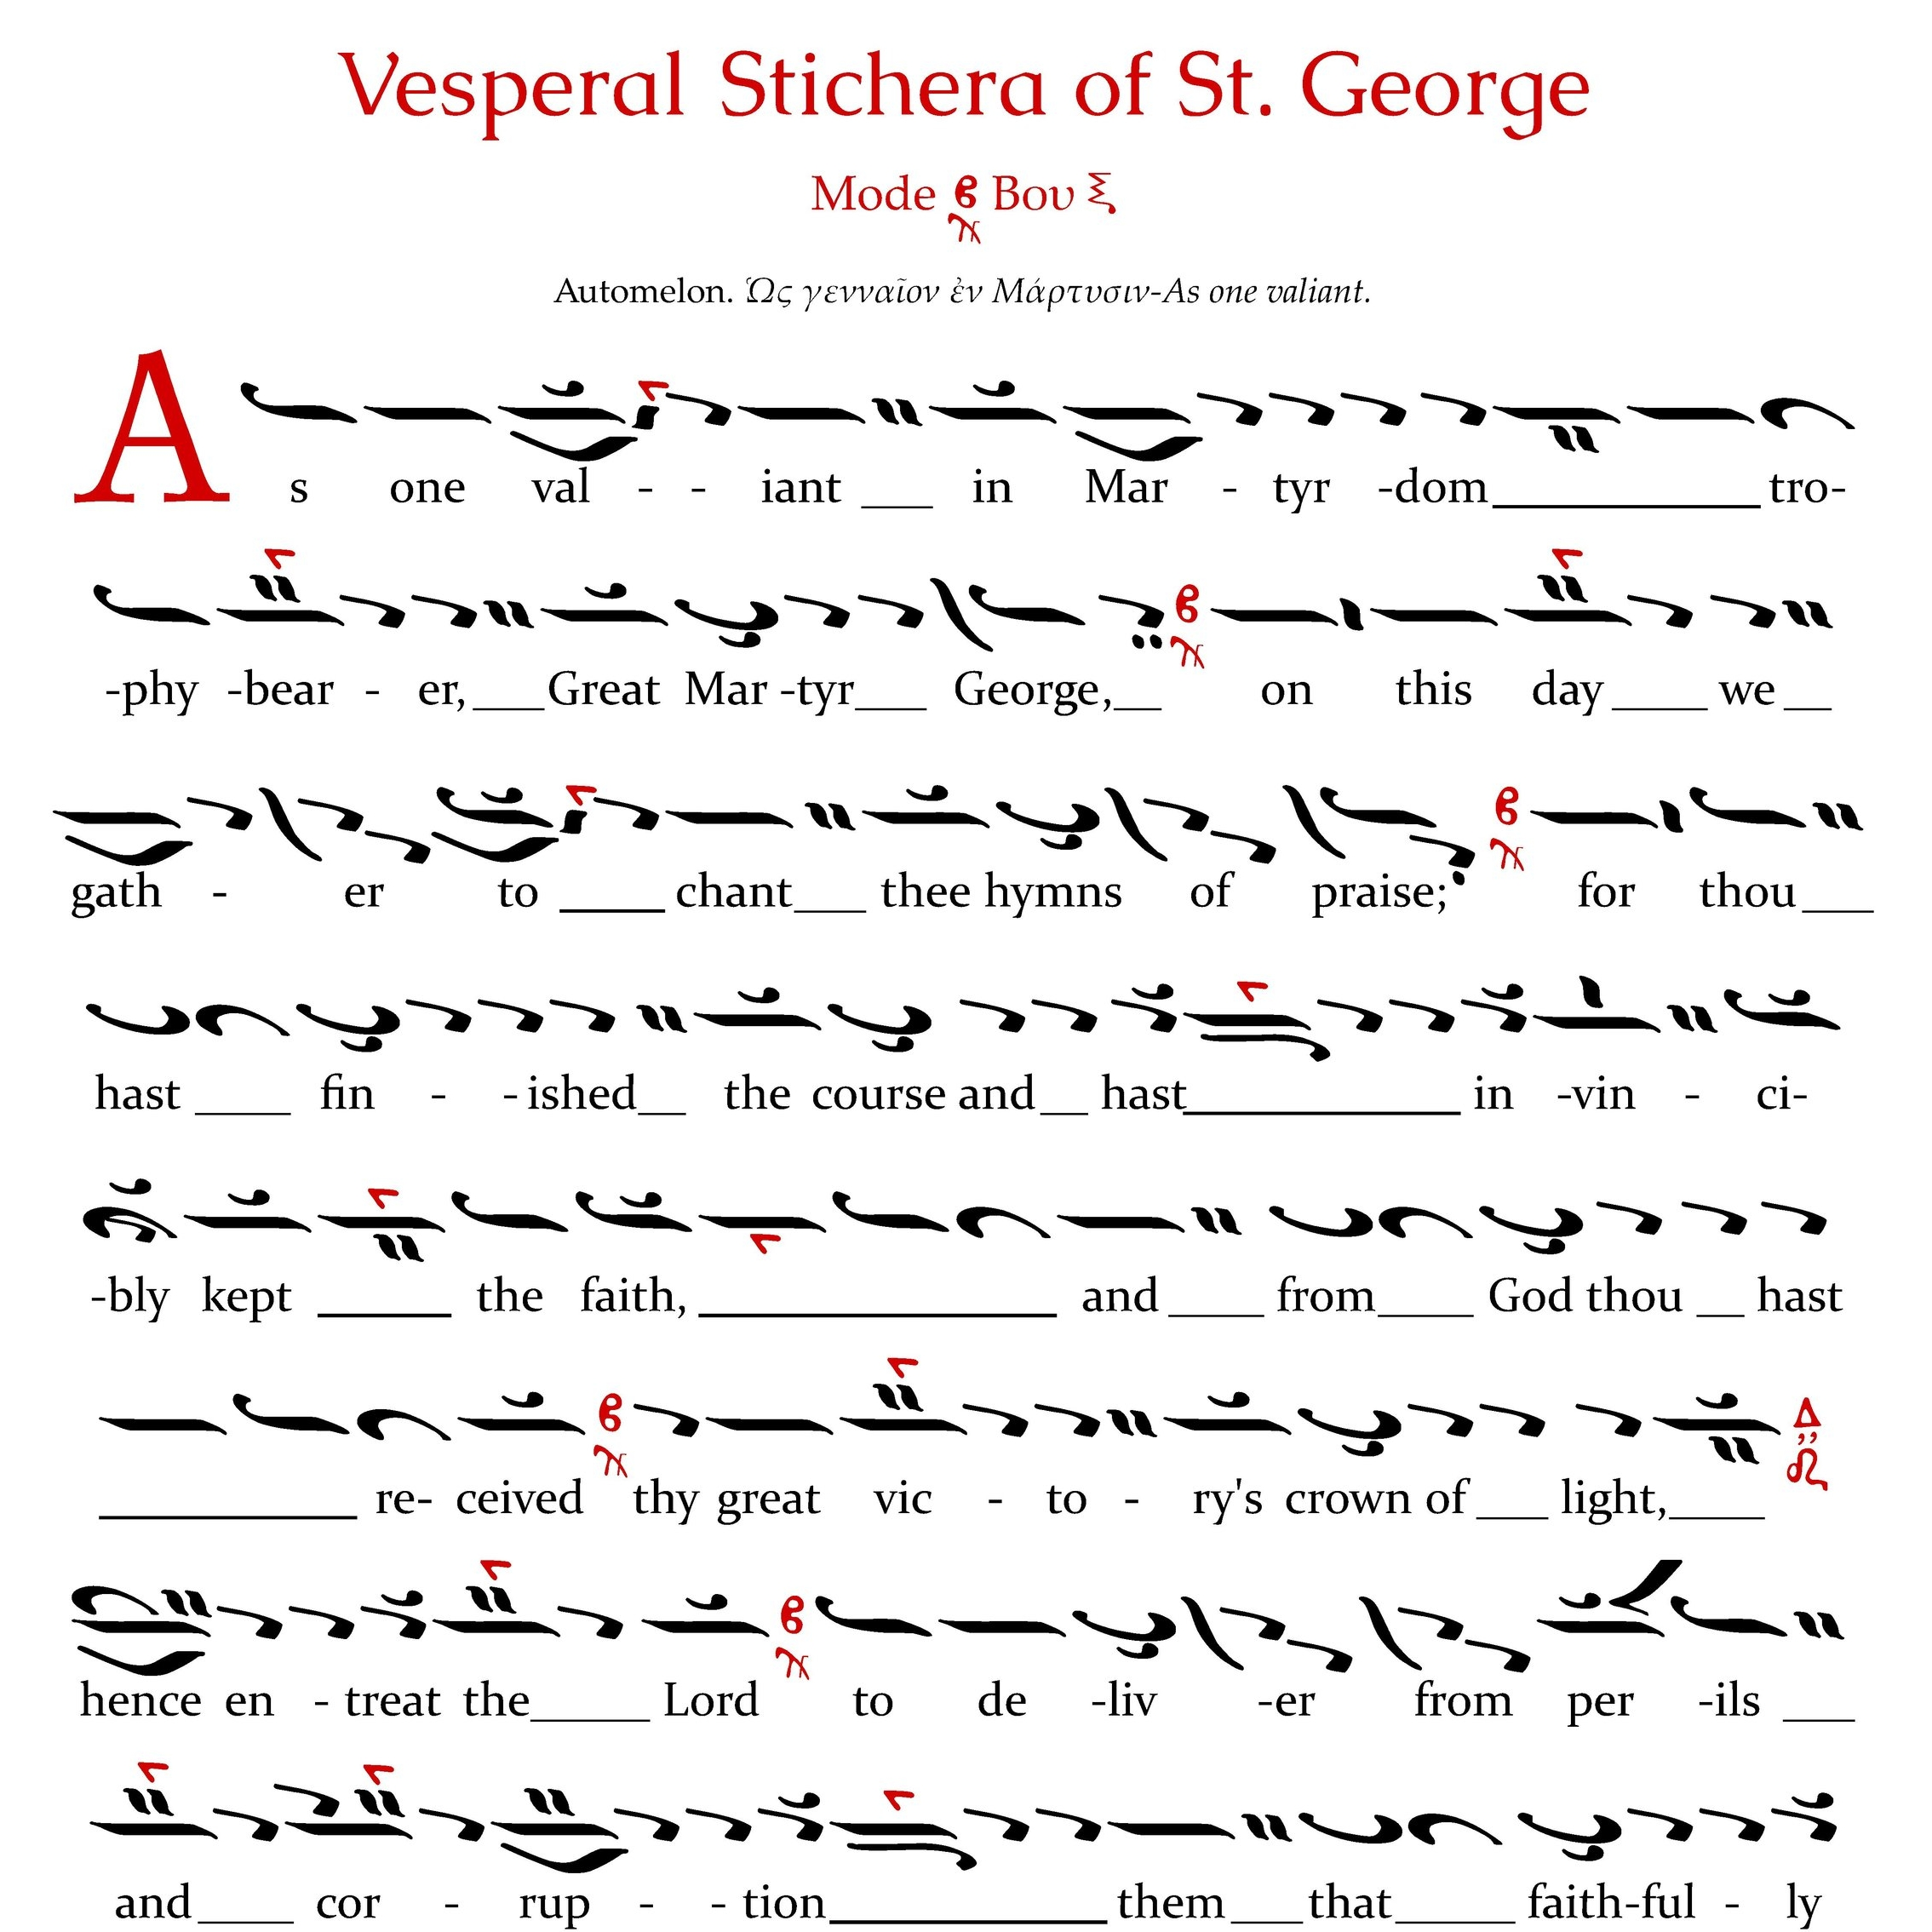 Vesperal Stichera of St. George_page_1.jpg